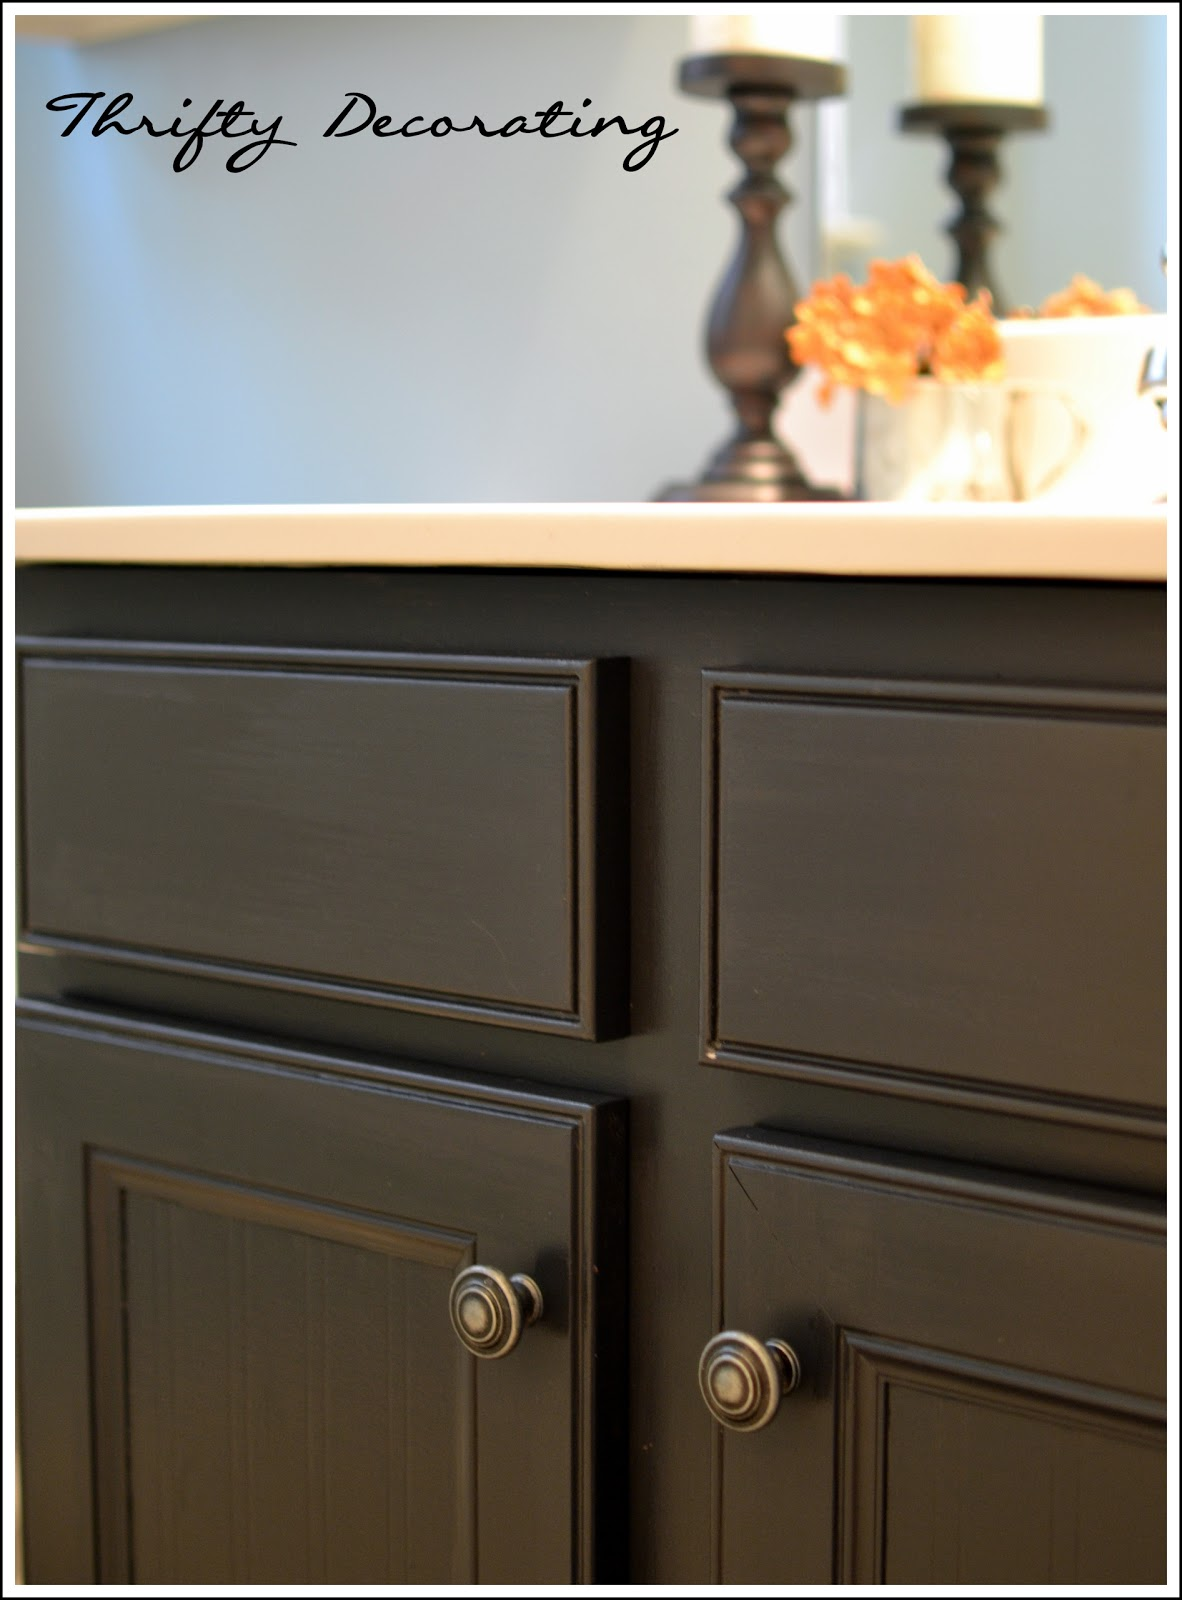 thrifty decorating standard builder 39 s cabinet upgrade